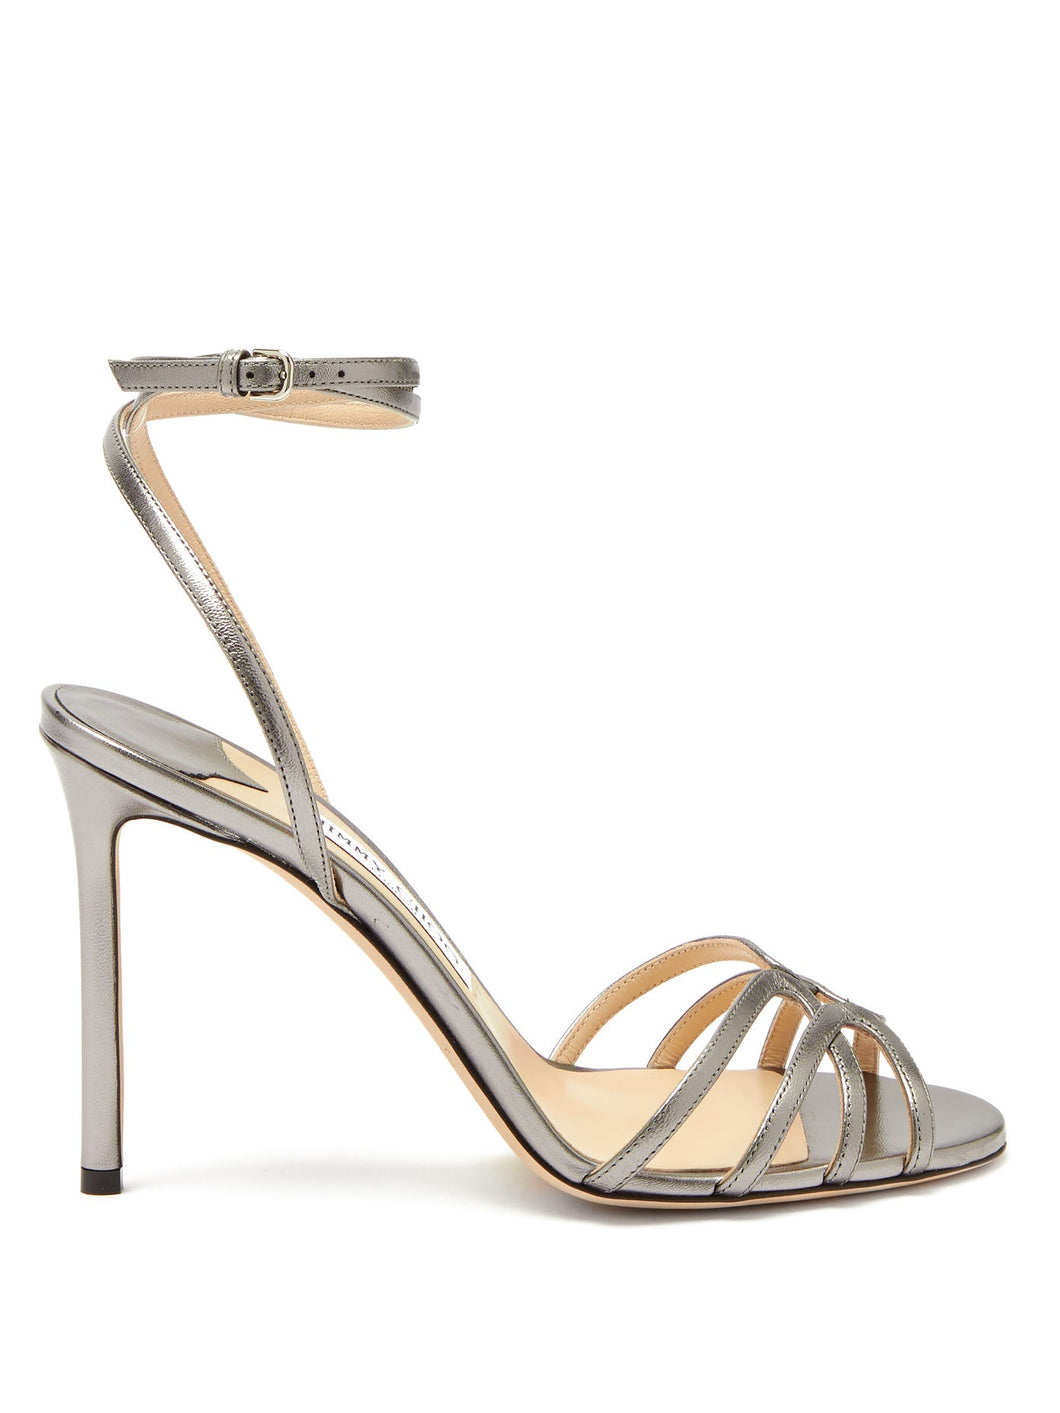 Mimi 100 metallic-leather sandals